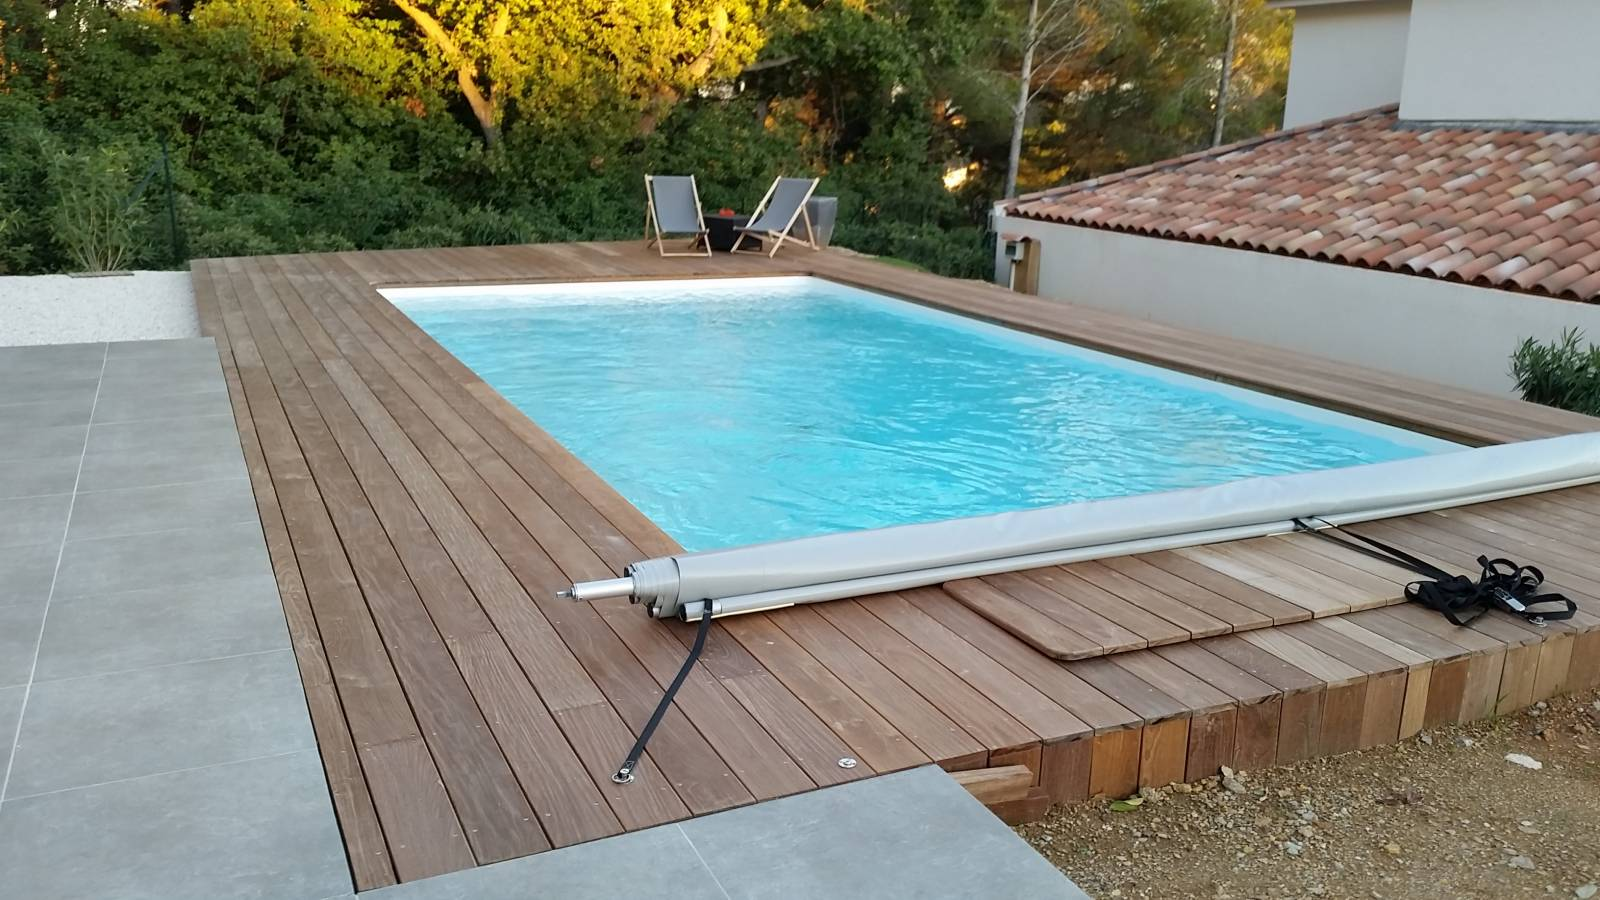 Devis piscine desjoyaux 8x4 liner piscine un large choix for Catalogue piscine desjoyaux